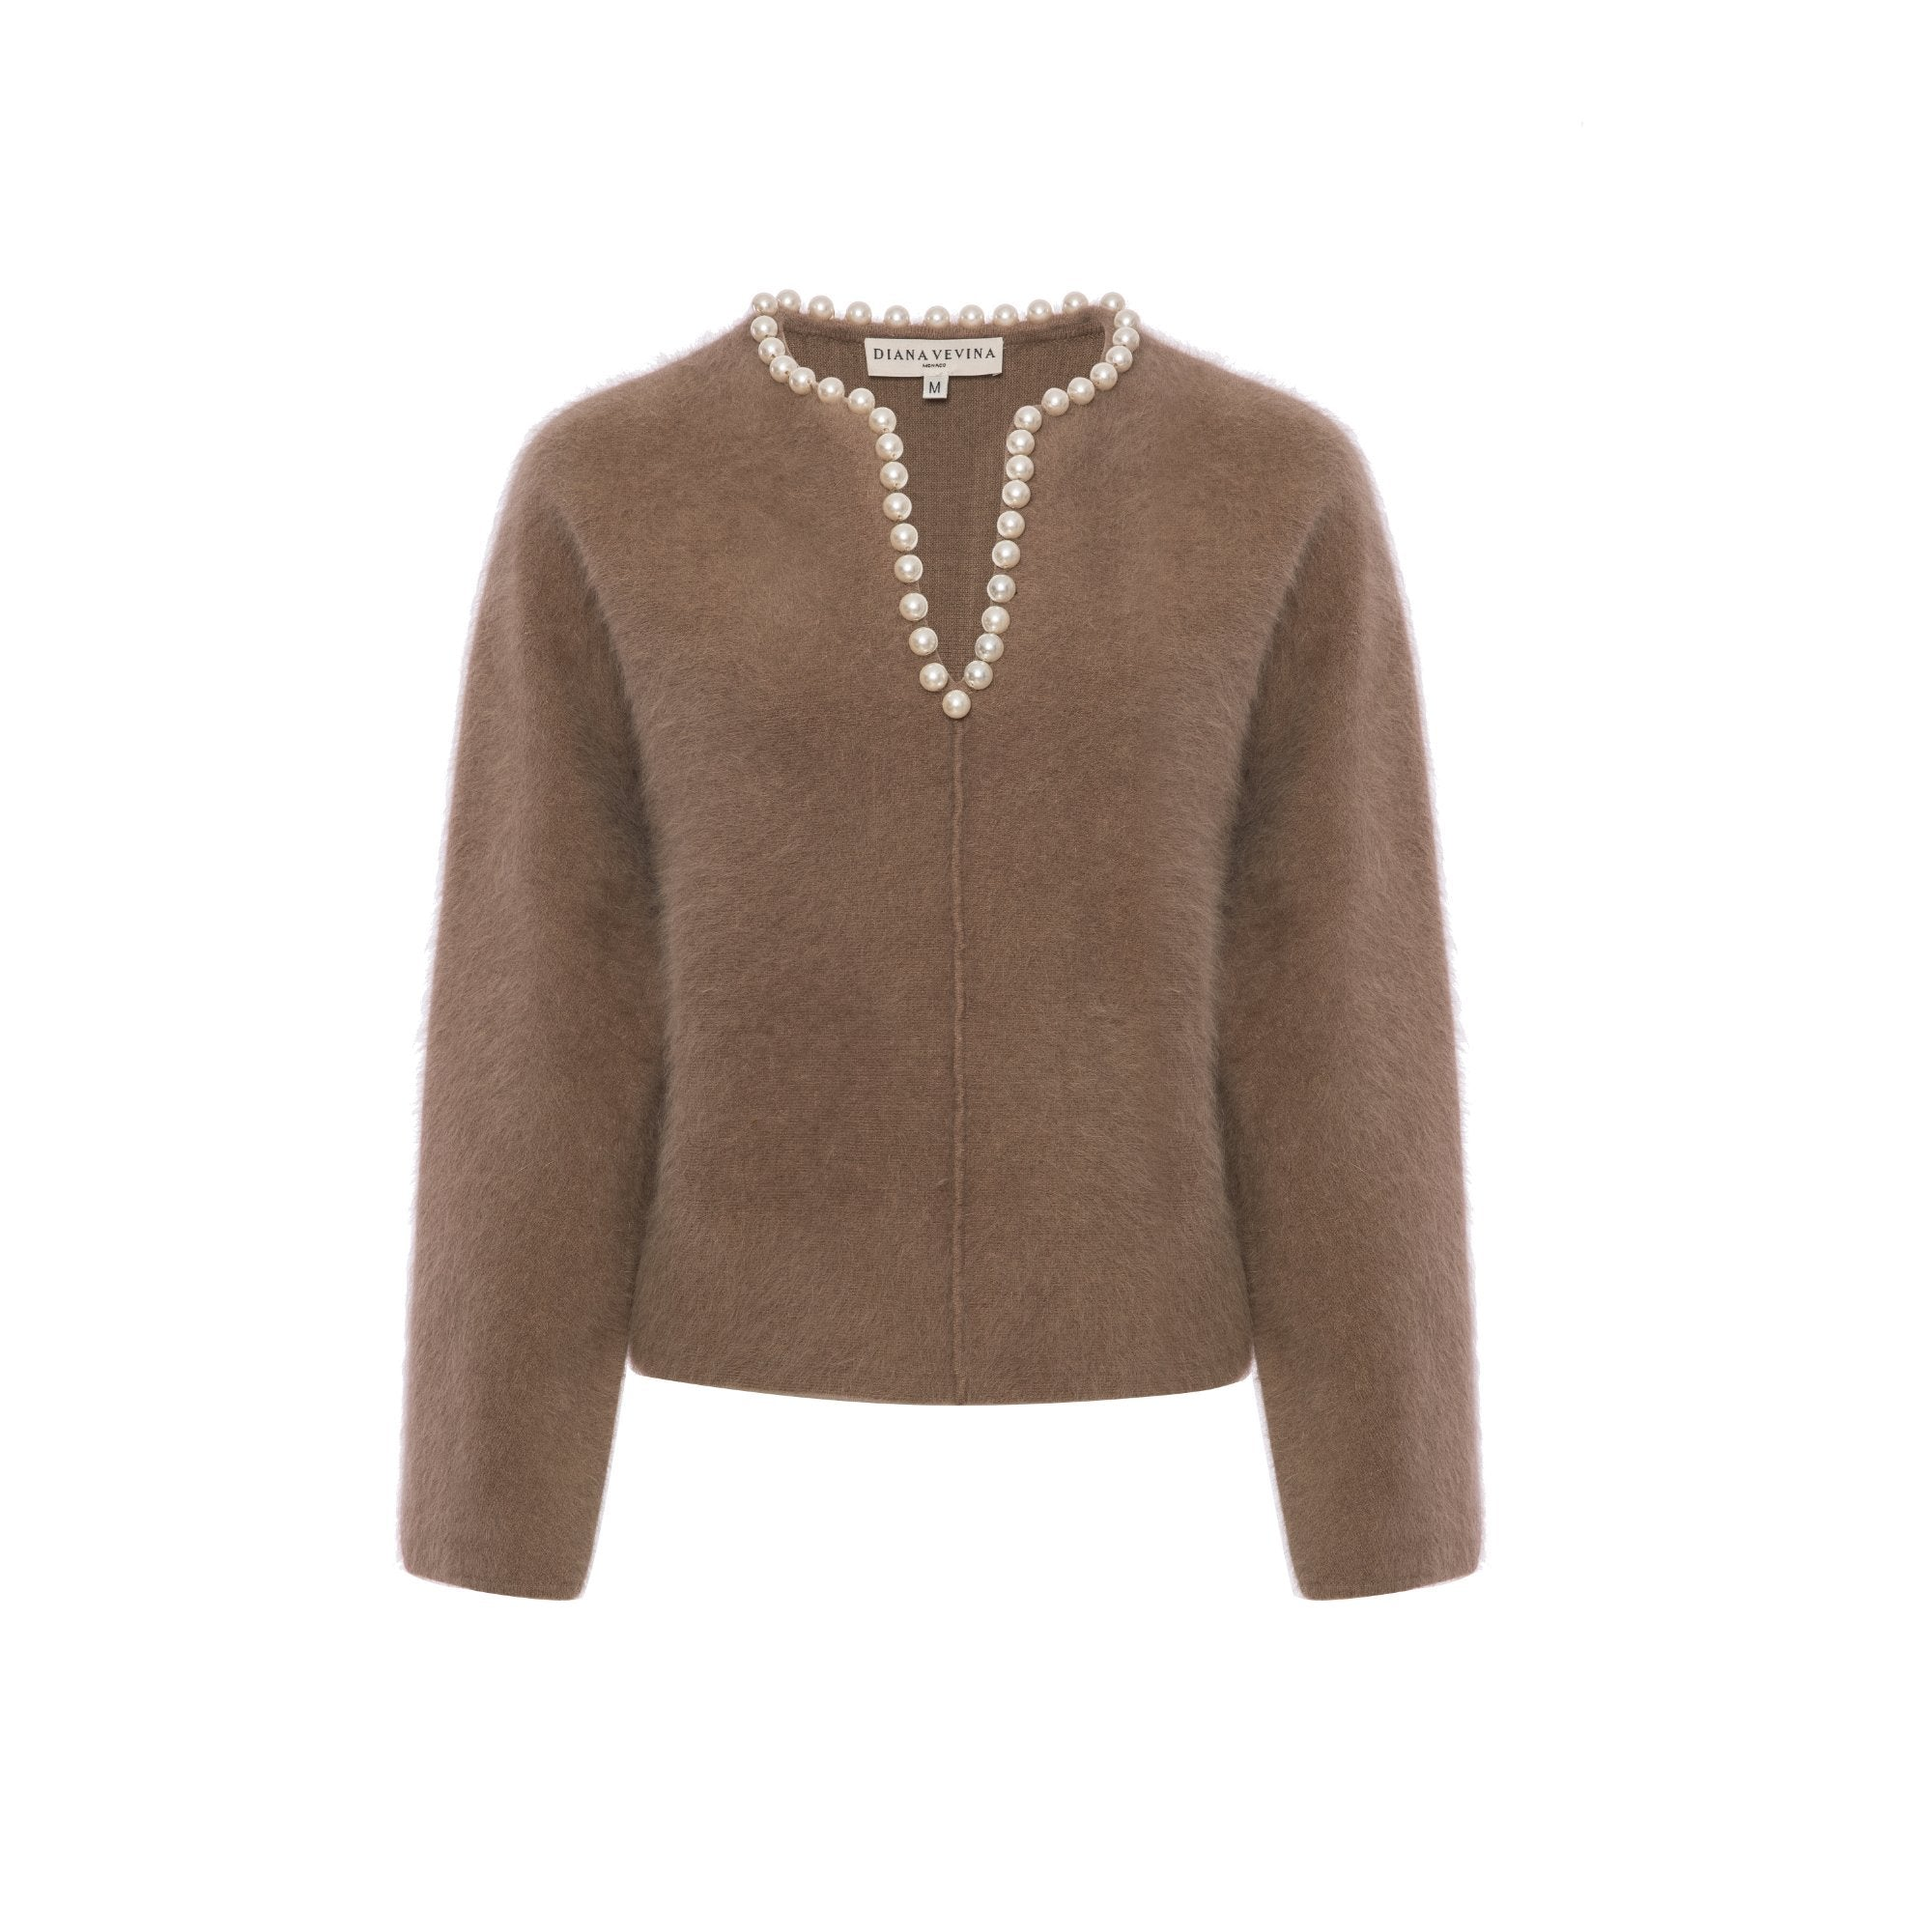 DIANA VEVINA Beige Pearl V-Neck Sweatshirt | MADA IN CHINA